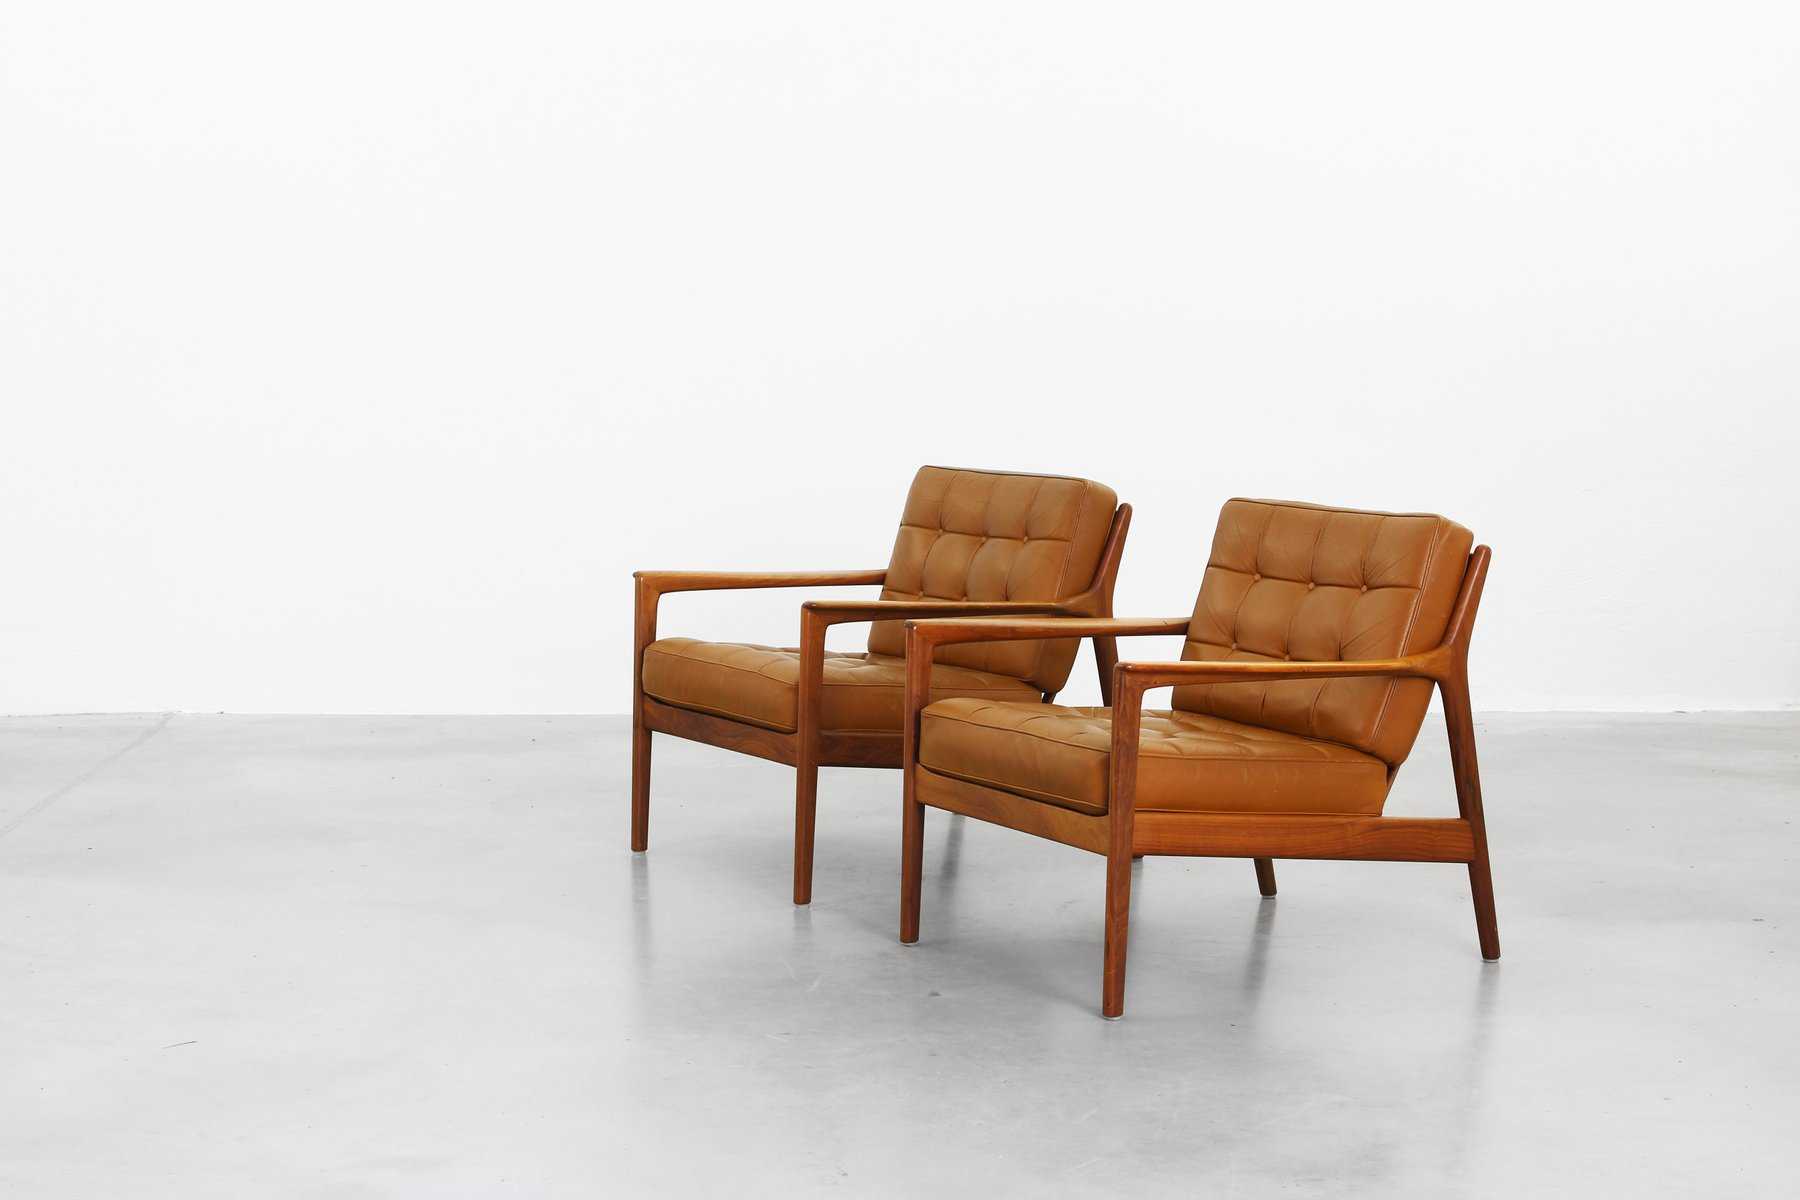 dux sofa uk bright coloured beds leather and teak easy chairs by folke ohlsson for 1960s